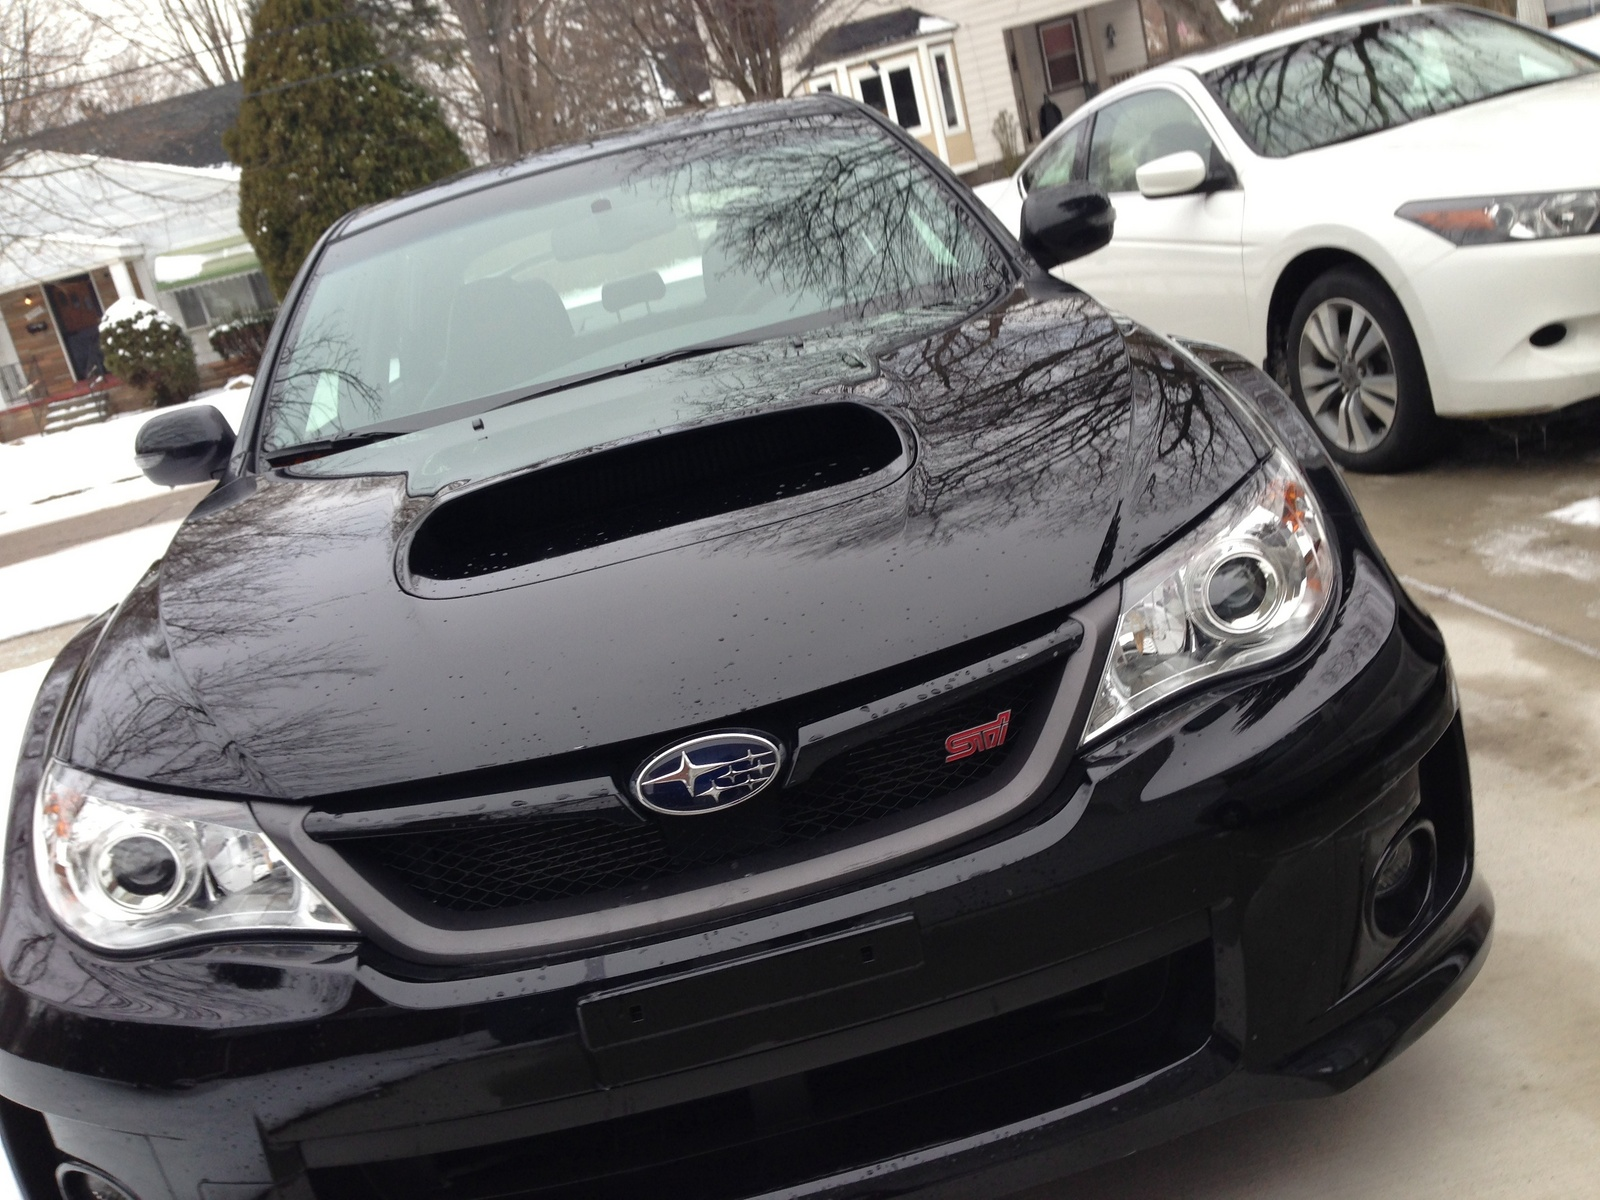 2013 subaru impreza wrx sti pictures cargurus. Black Bedroom Furniture Sets. Home Design Ideas